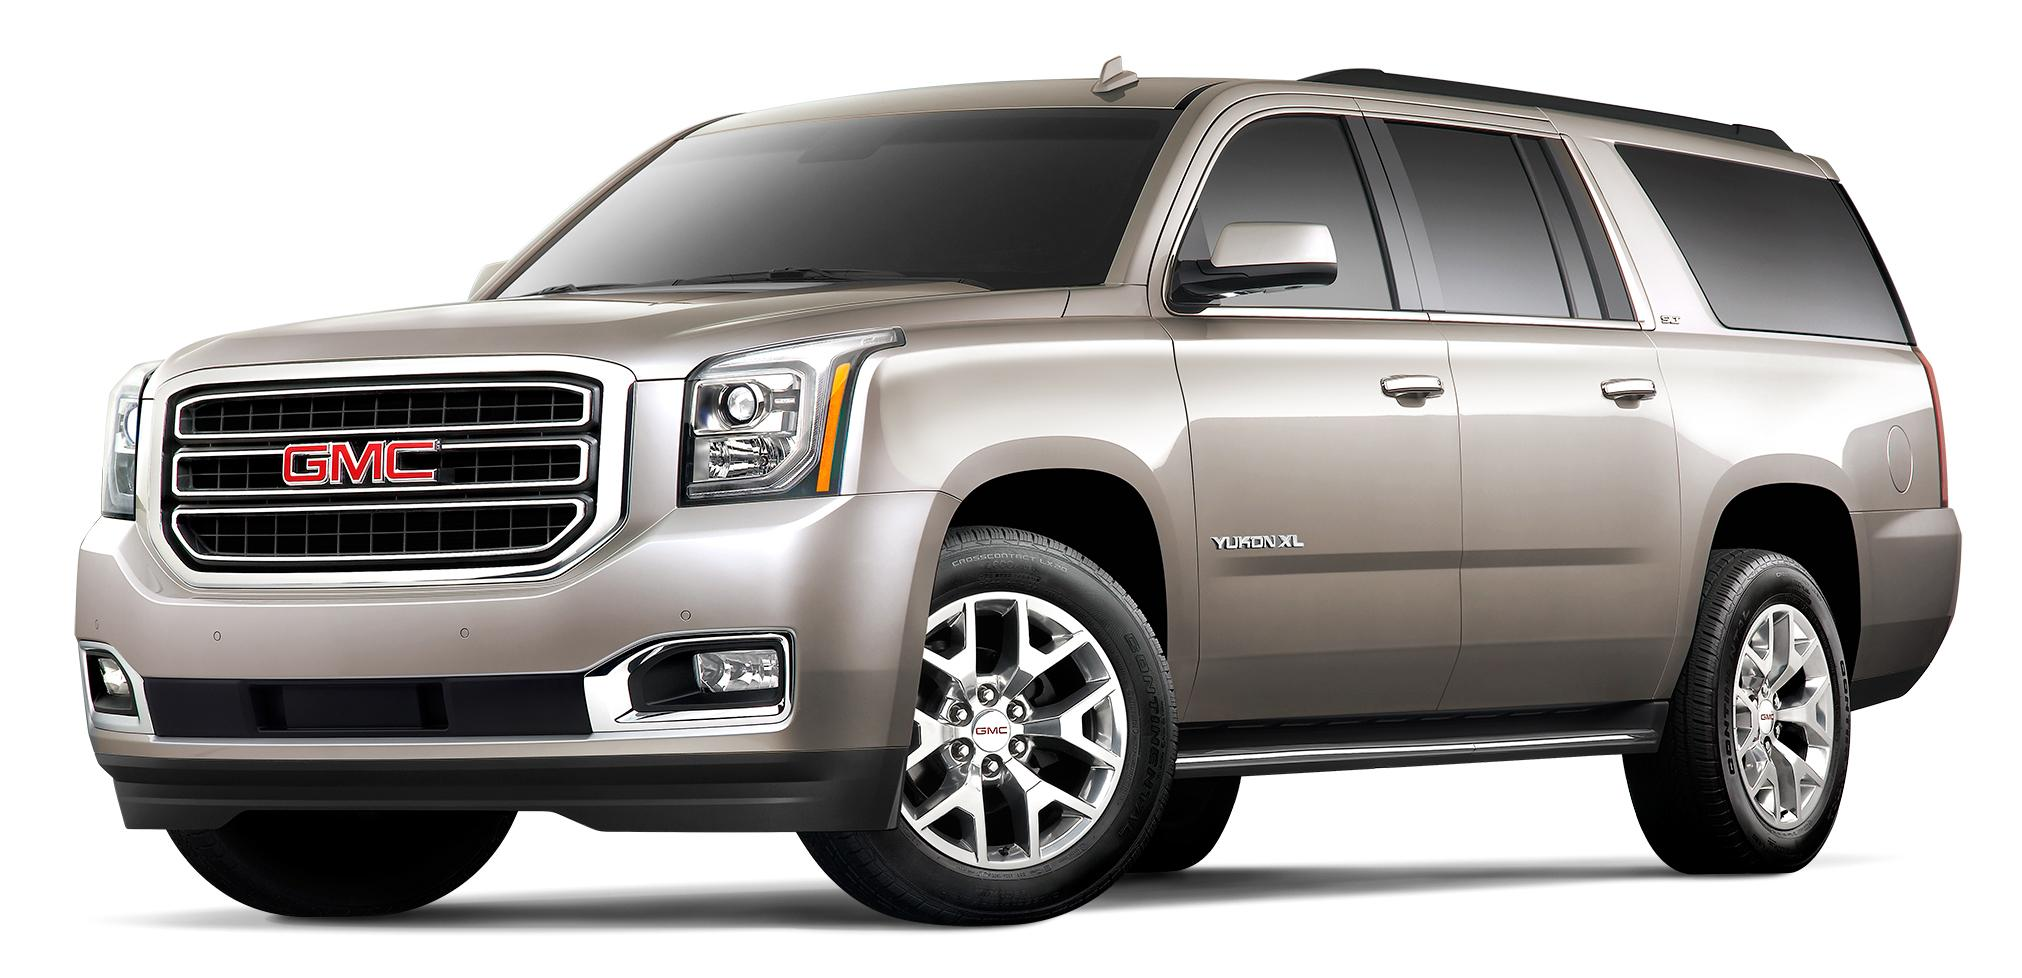 GMC Yukon XL Bronze